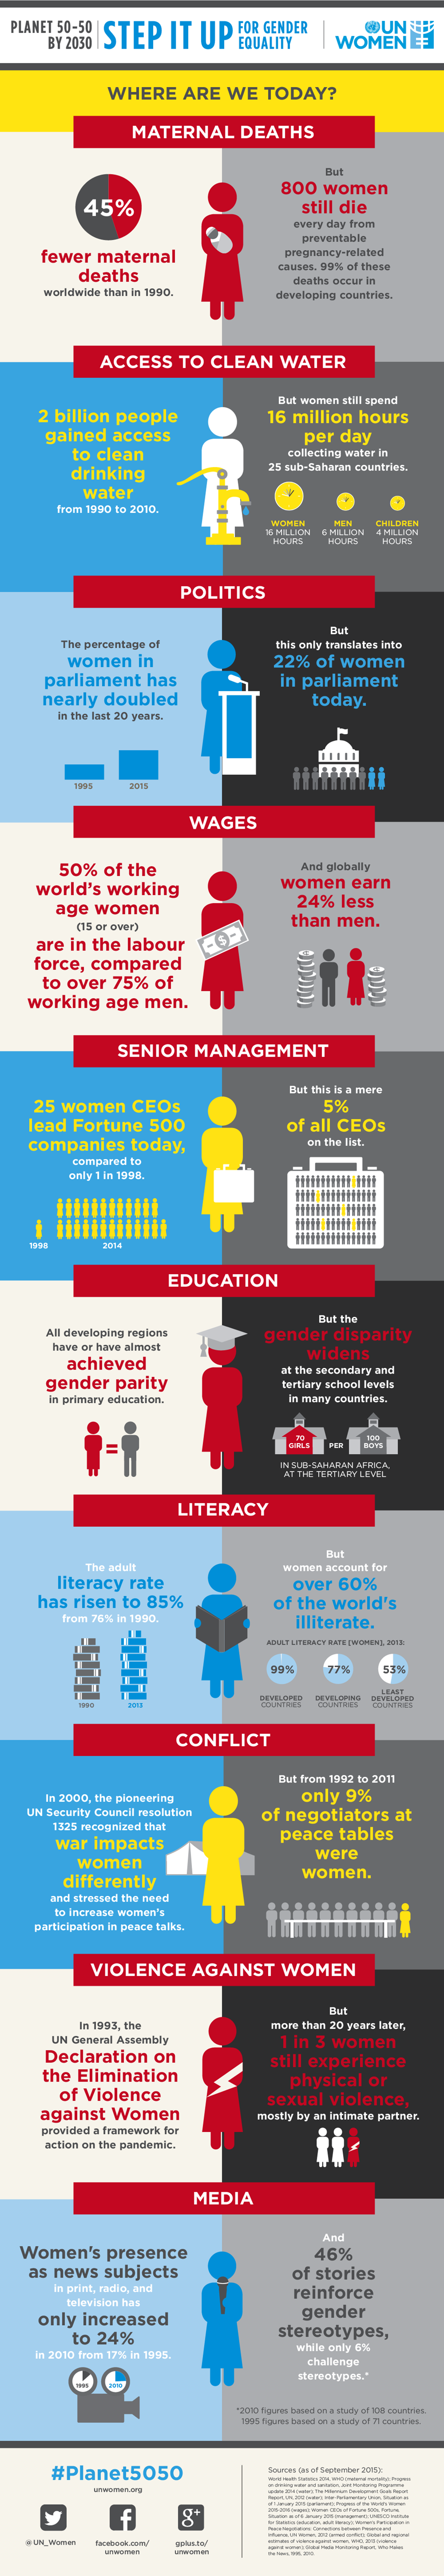 infographic-gender-equality-where-are-we-today-en